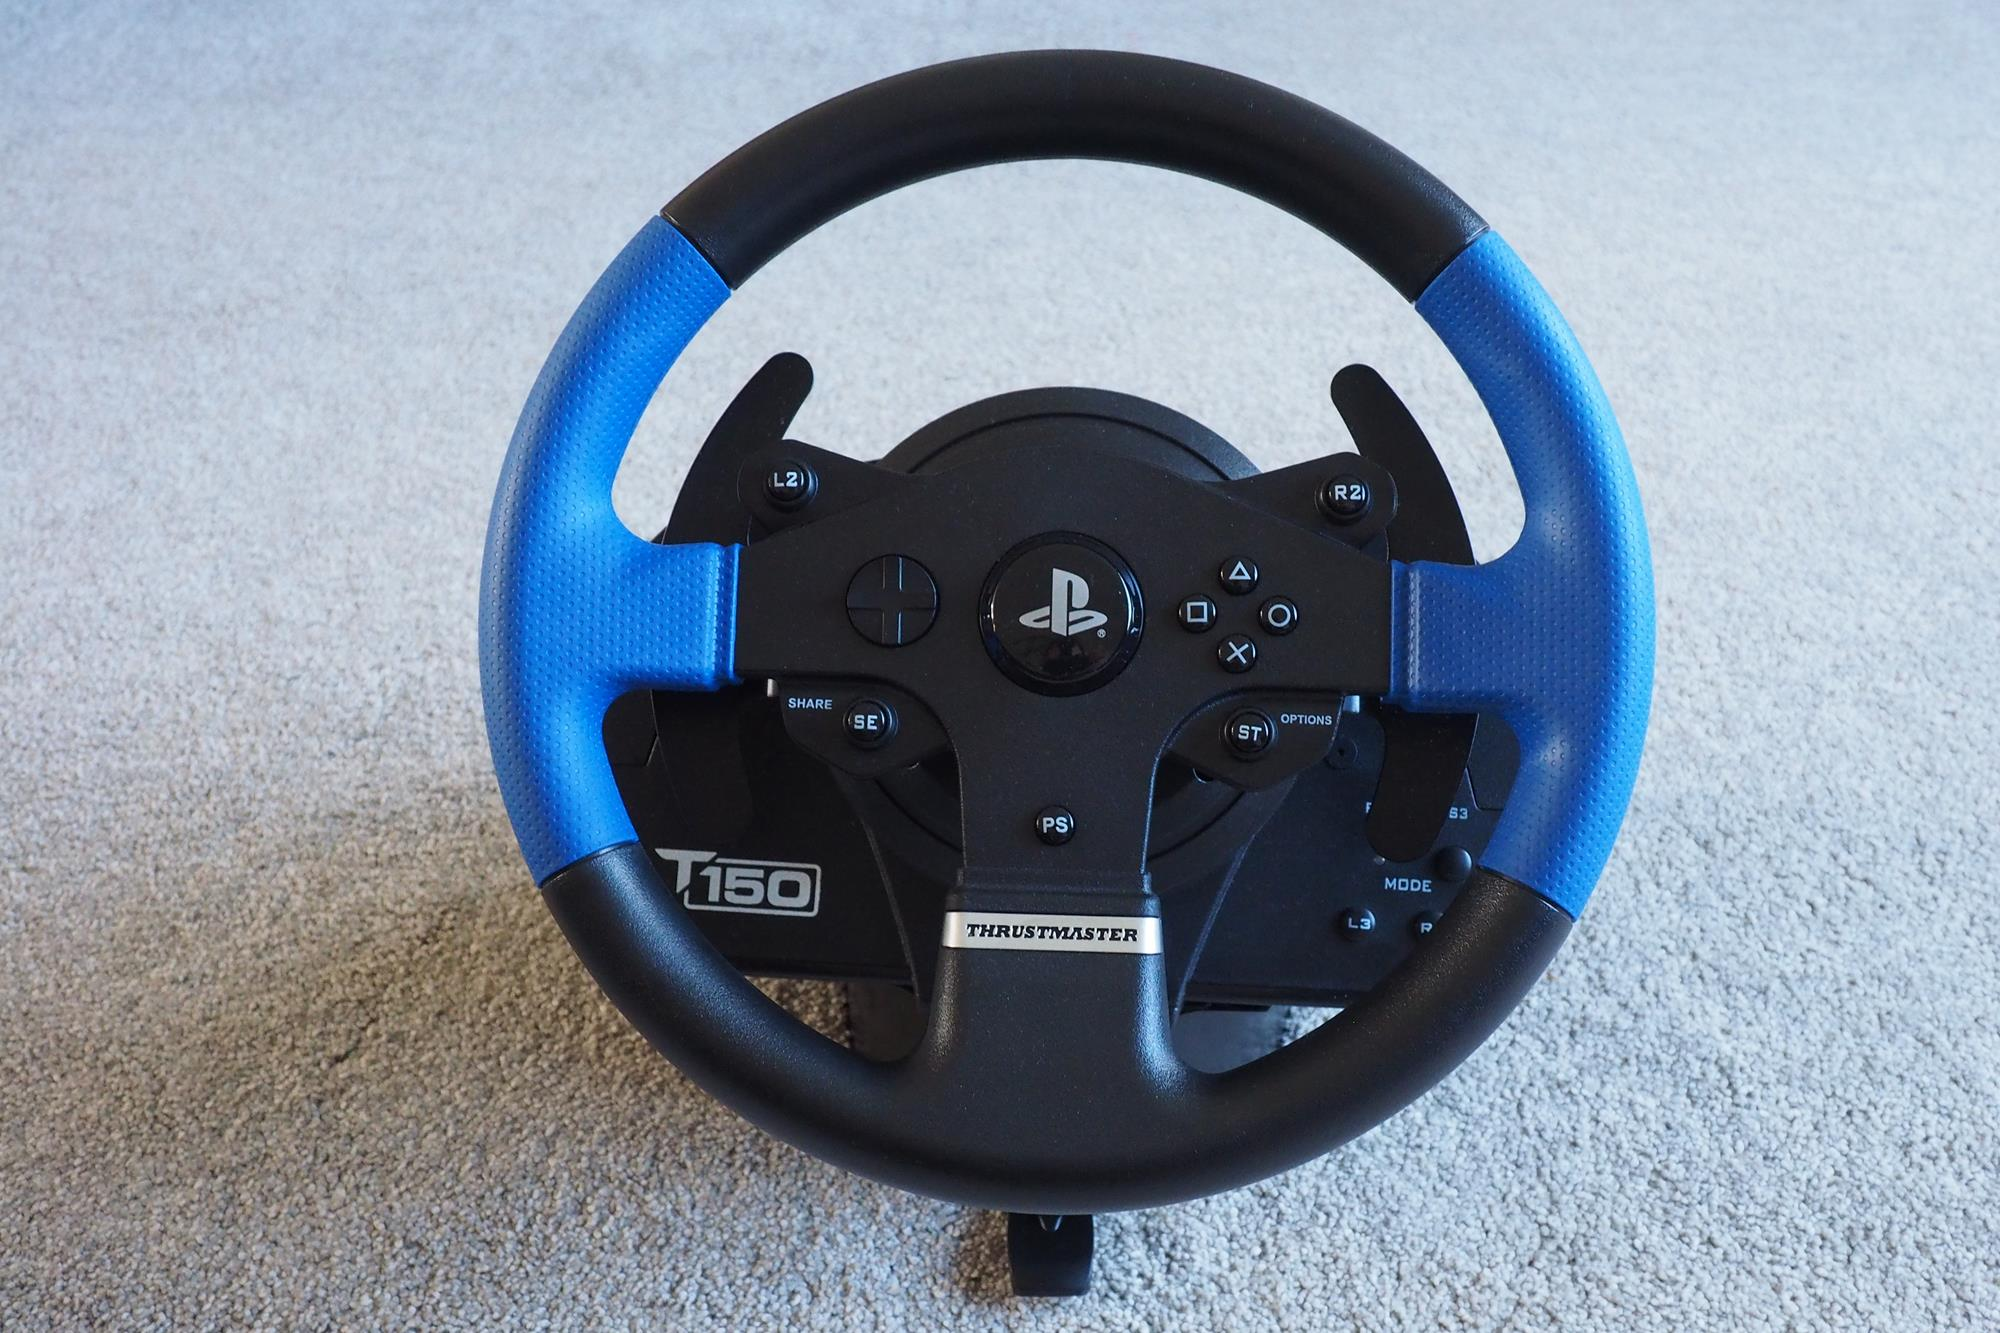 Thrustmaster T150 Pro Review | Trusted Reviews